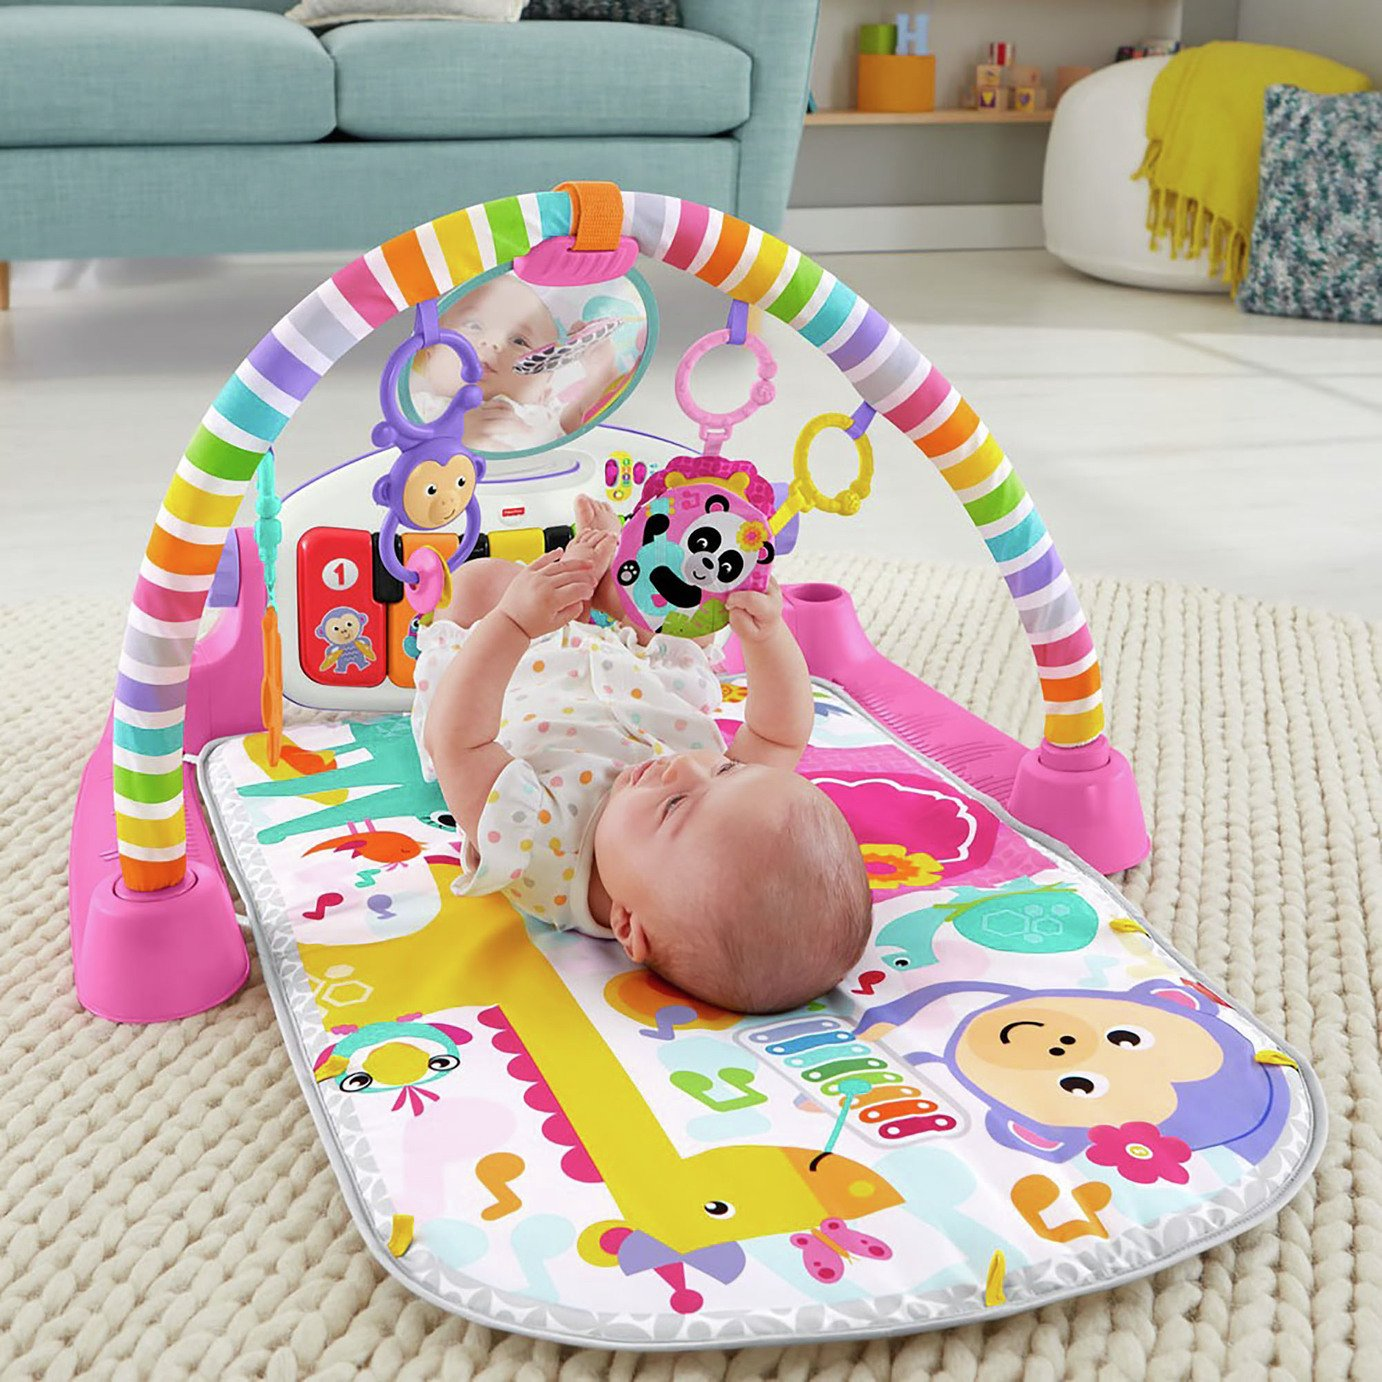 Fisher-Price Kick and Play Piano Gym - Pink from Fisher-Price